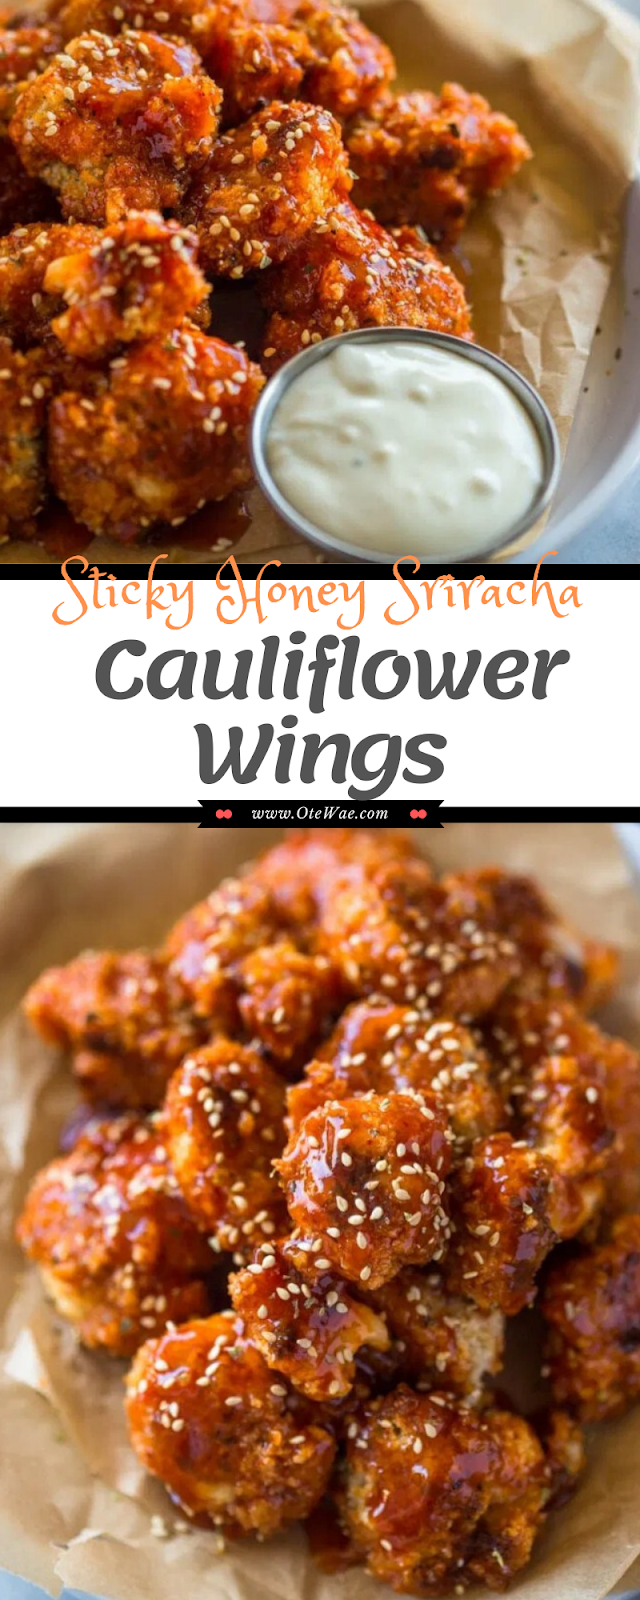 Sticky Honey Sriracha Cauliflower Wings